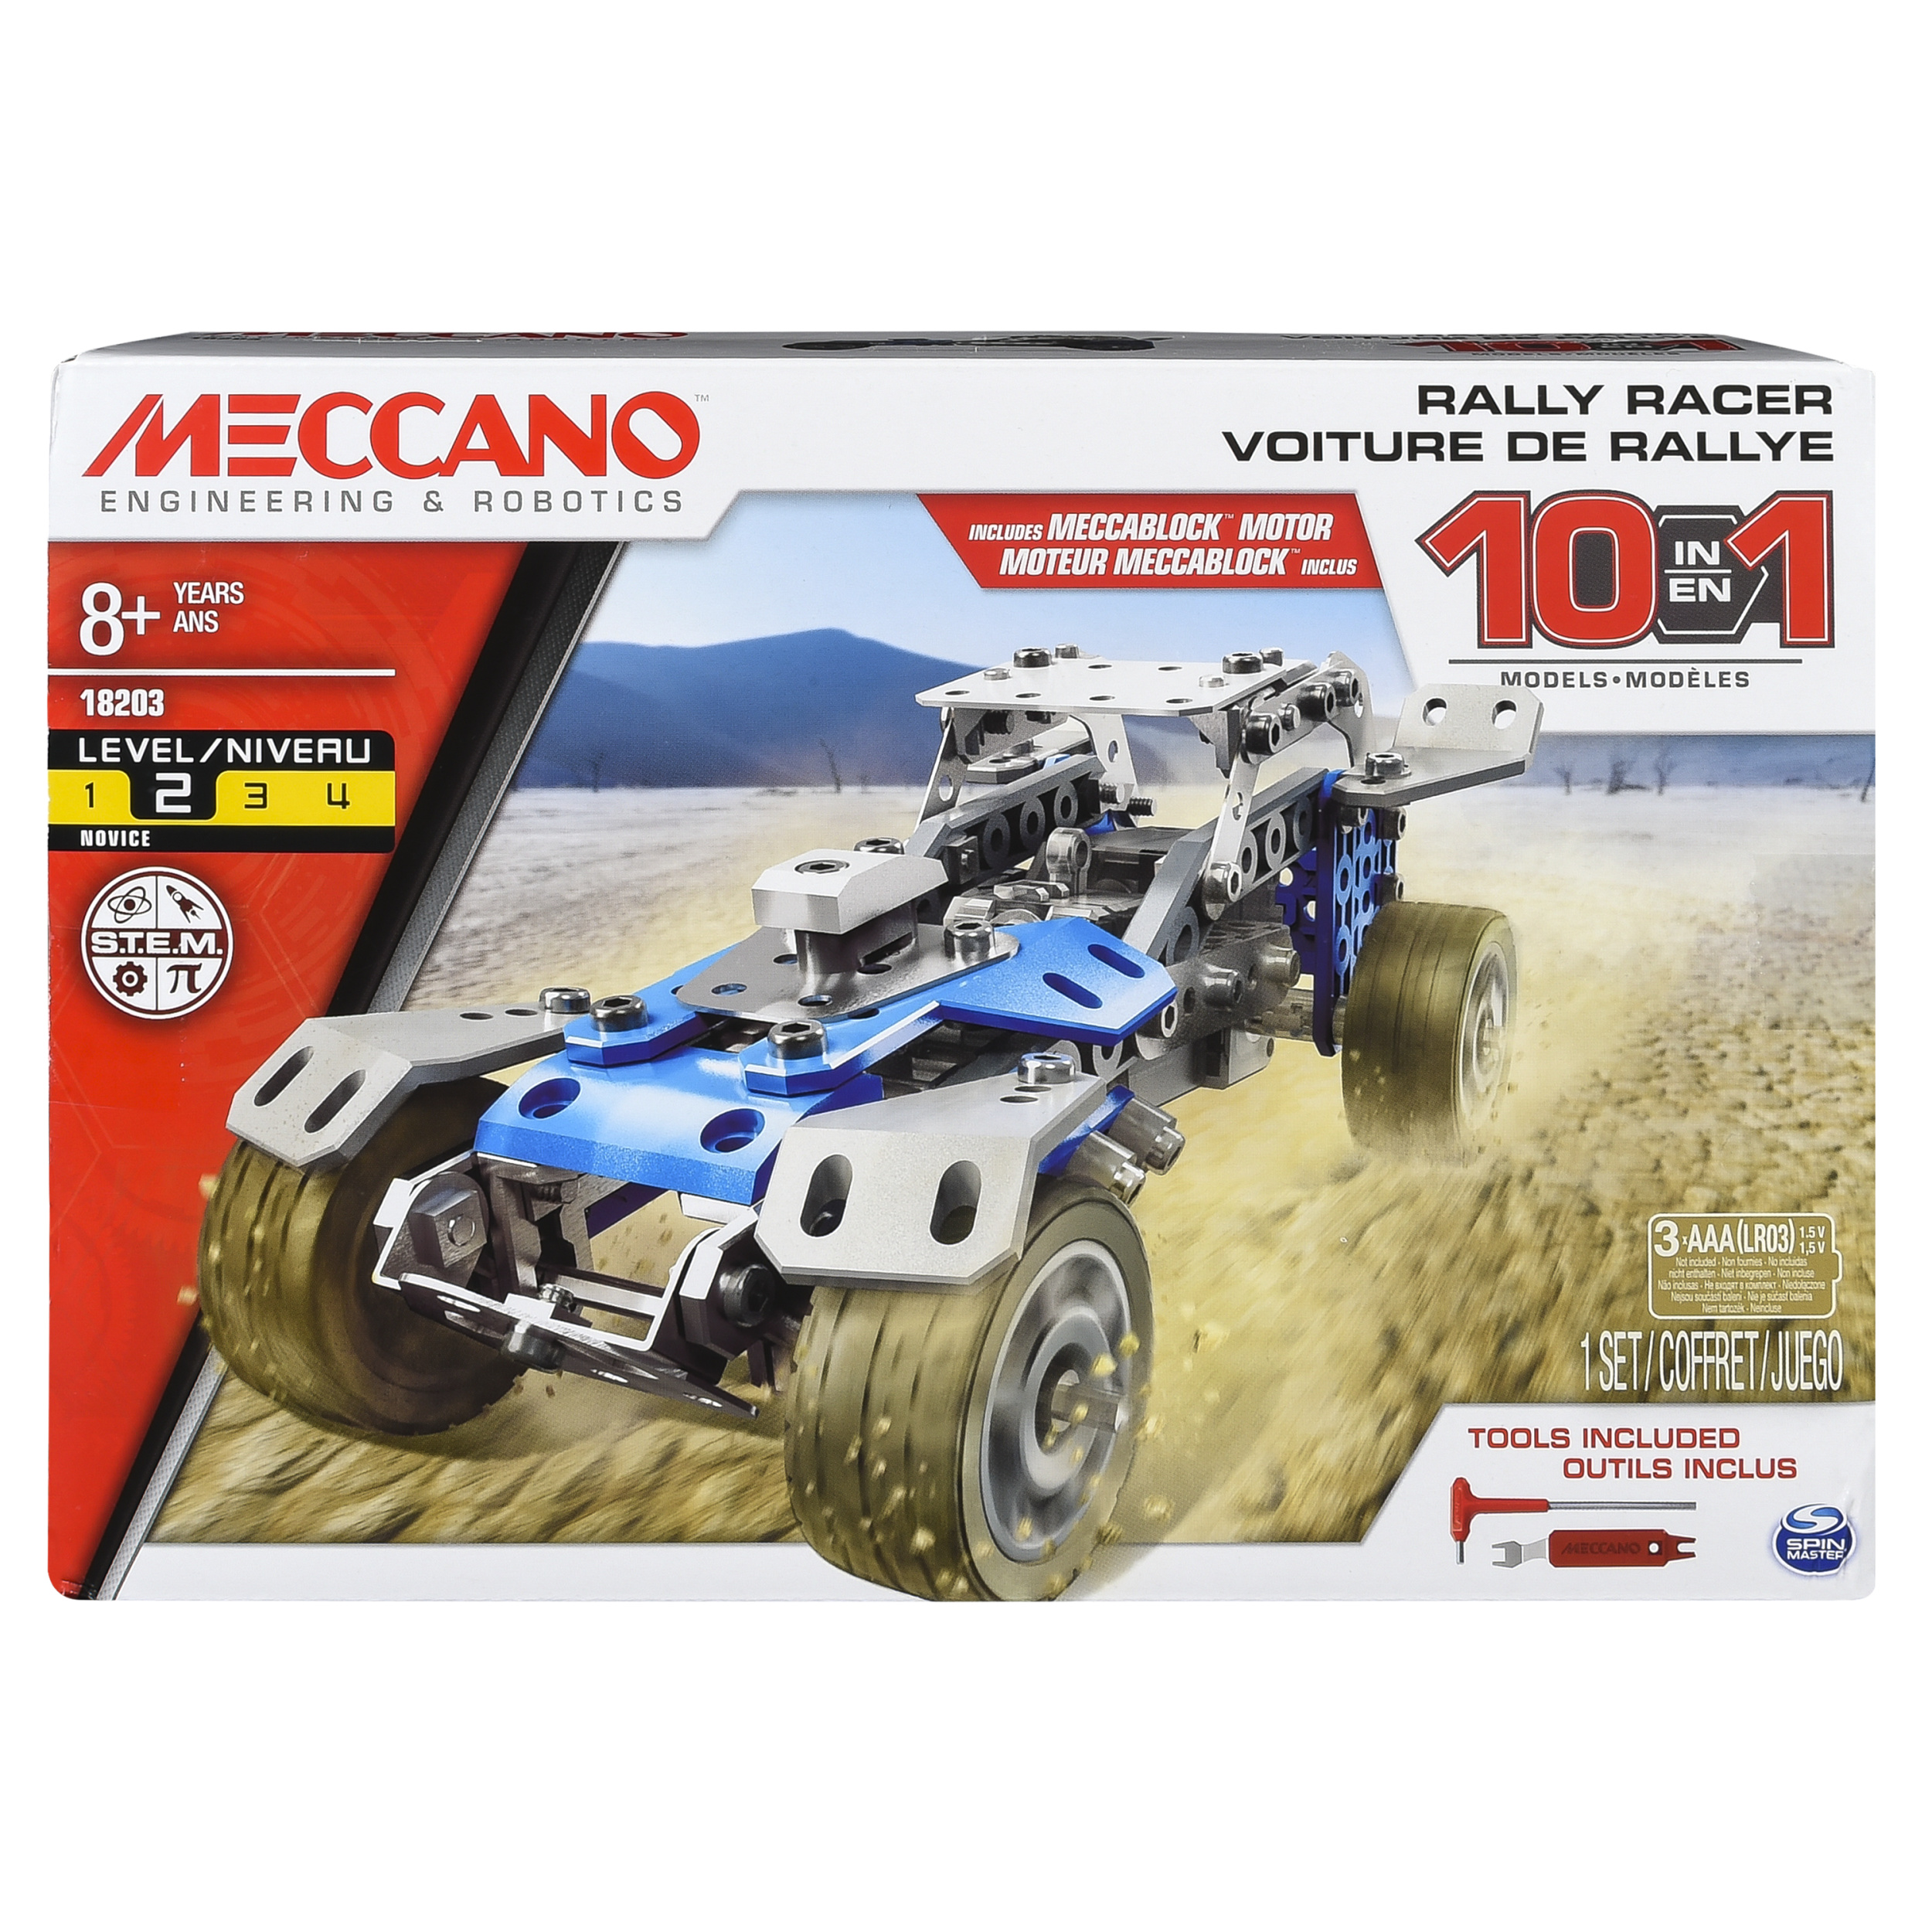 Erector by Meccano, 10 in 1 Rally Racer Model Vehicle Building Kit, for Ages 8 and up, STEM Construction Education Toy